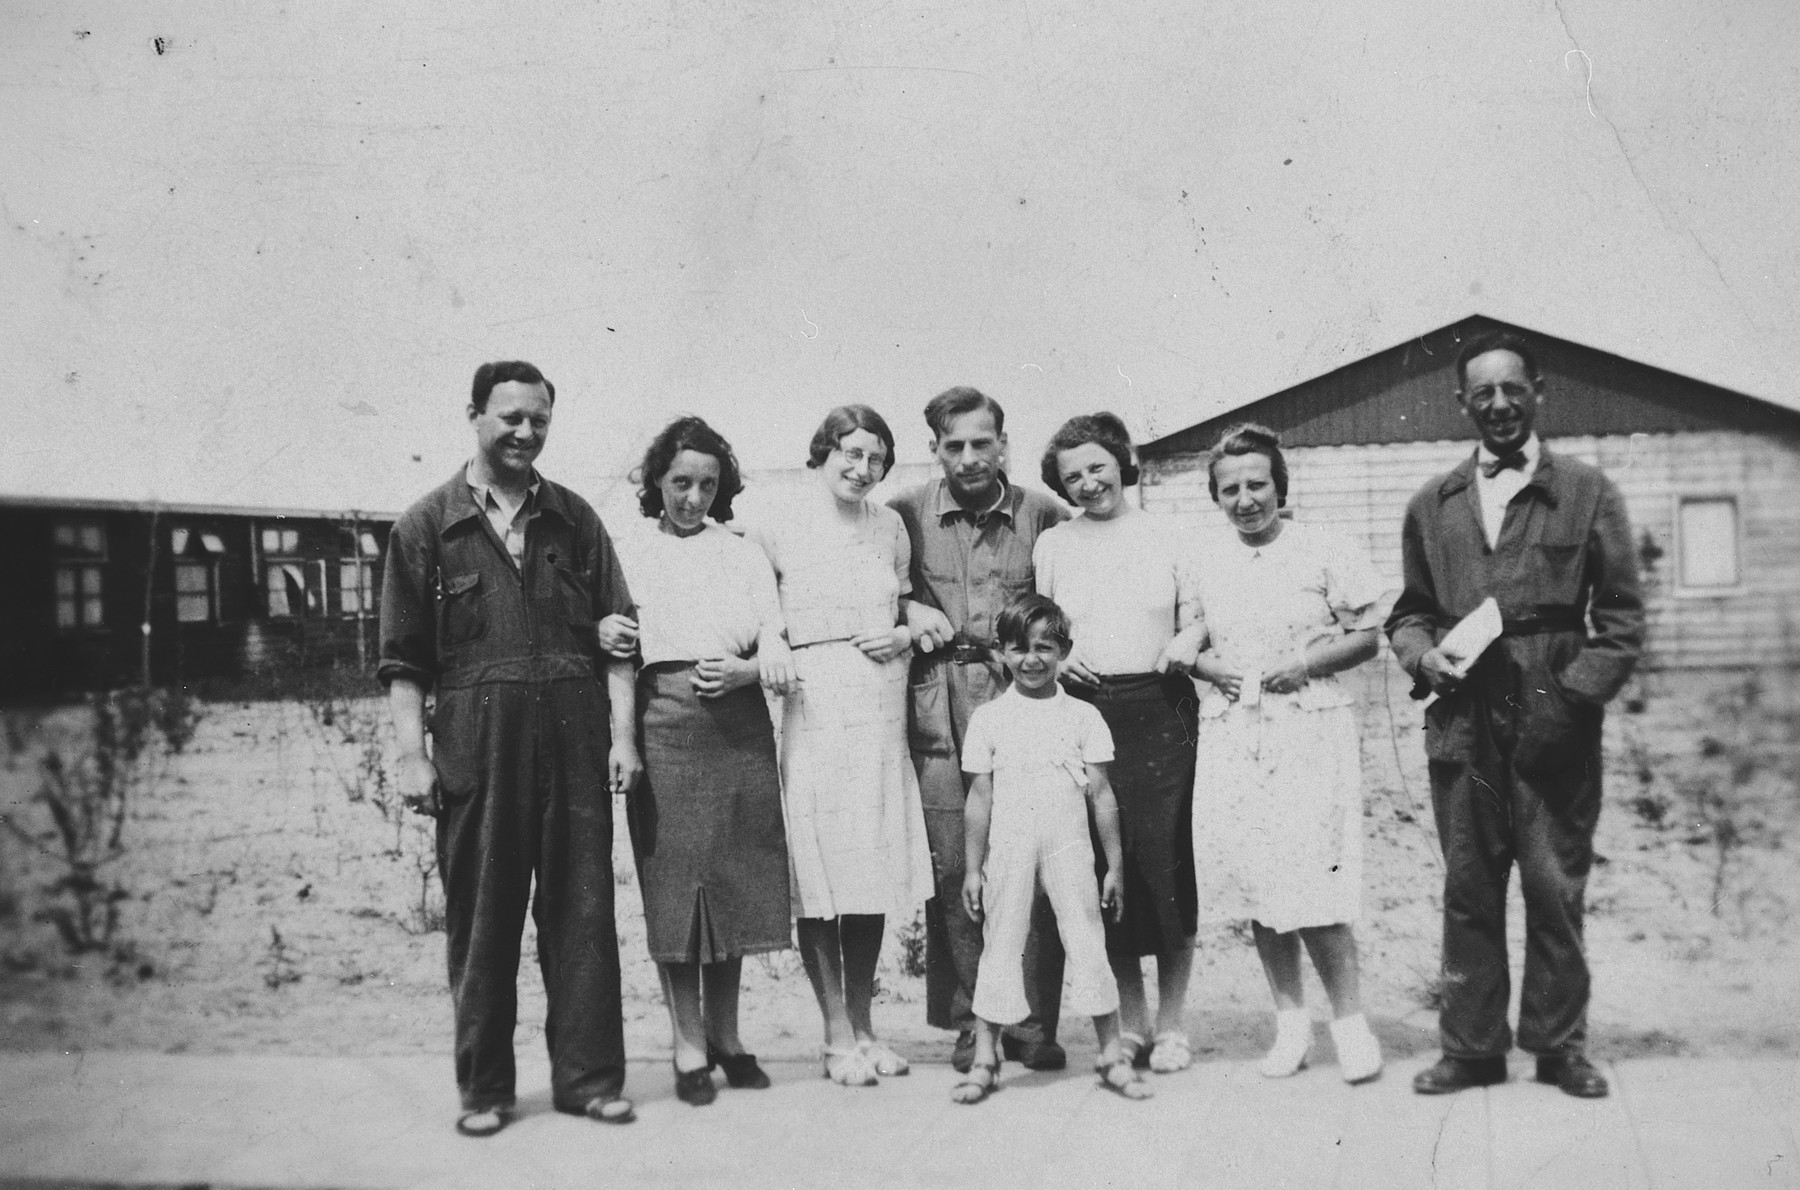 German-Jewish refugees pose outside one of the barracks of the Westerbork camp.  Among those pictured are Herta and Manfred Fink and their son Michael.